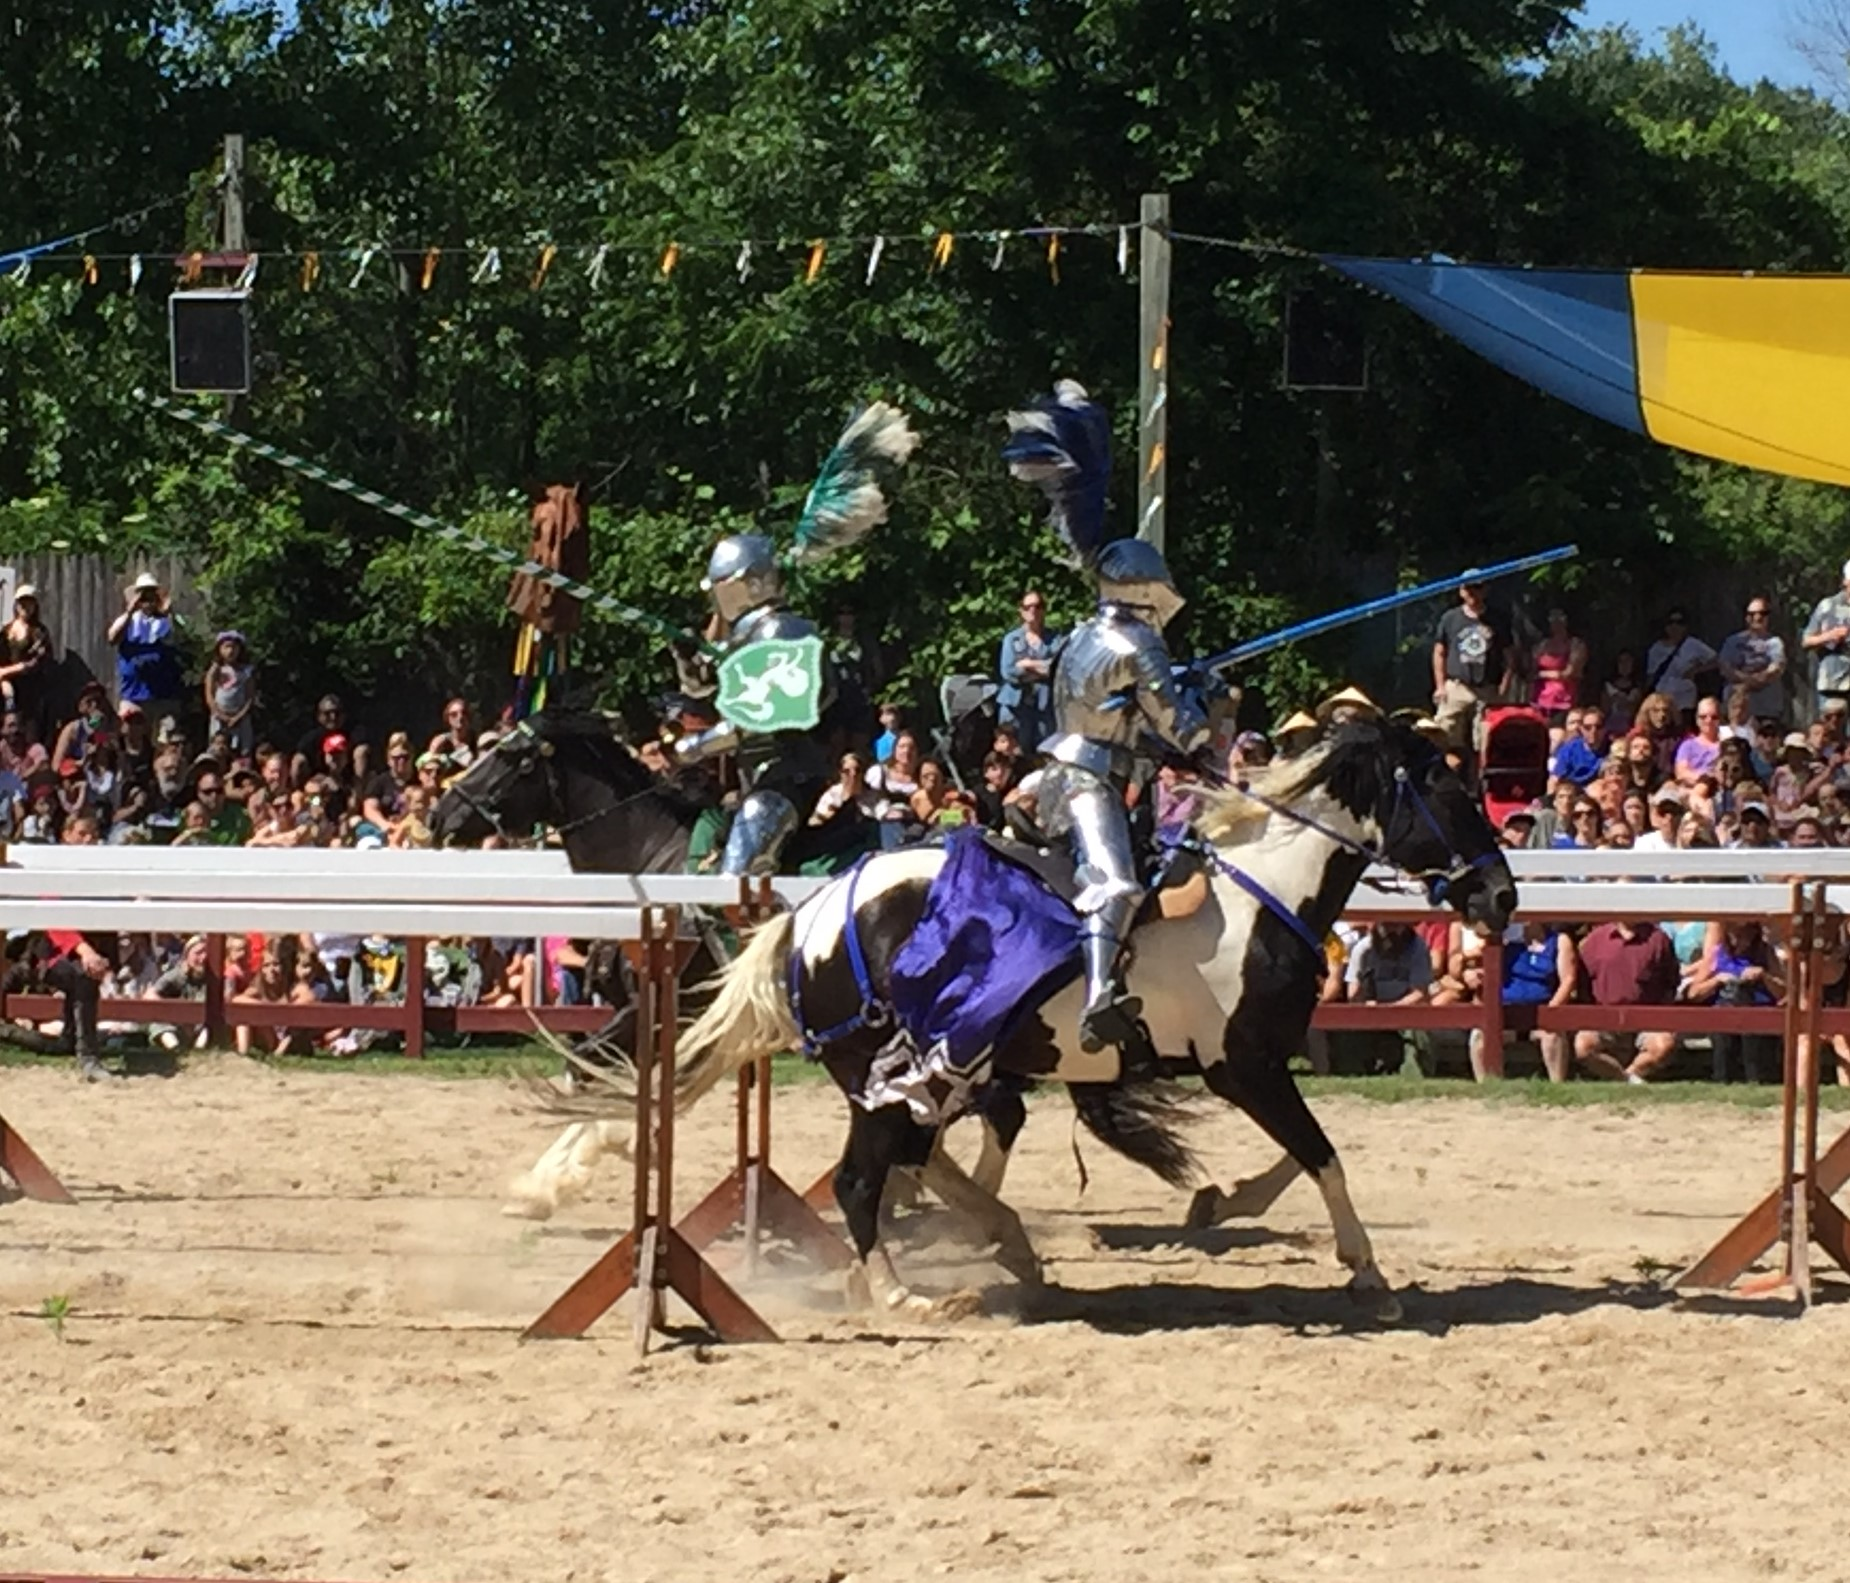 Three bloggable things about the Renaissance Faire